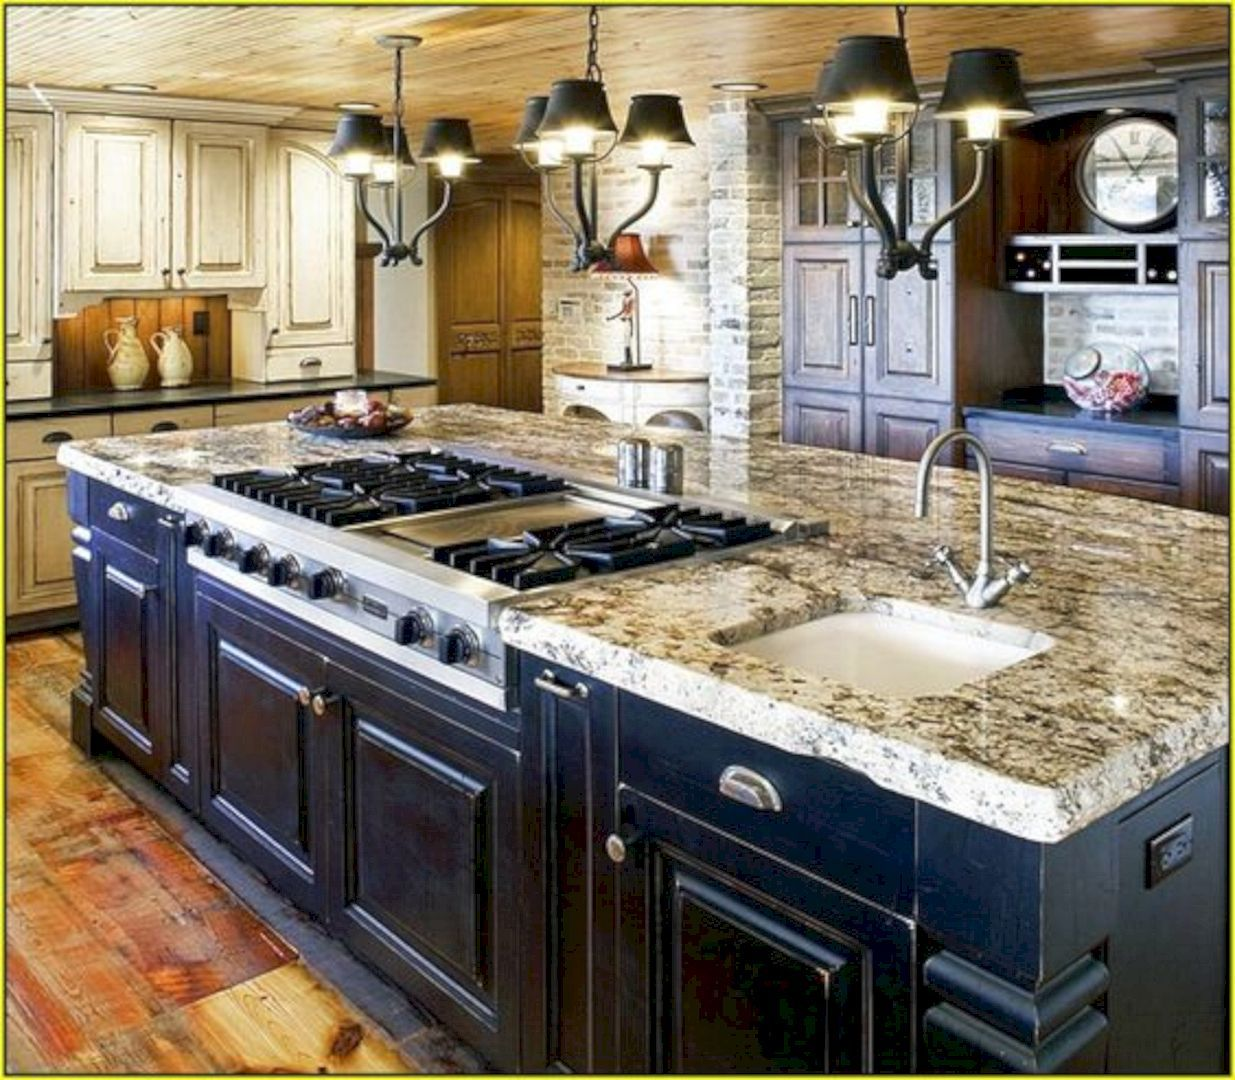 16 Nicely Painted Kitchen Cabinets: 16 Spectacular Kitchen Sink Designs